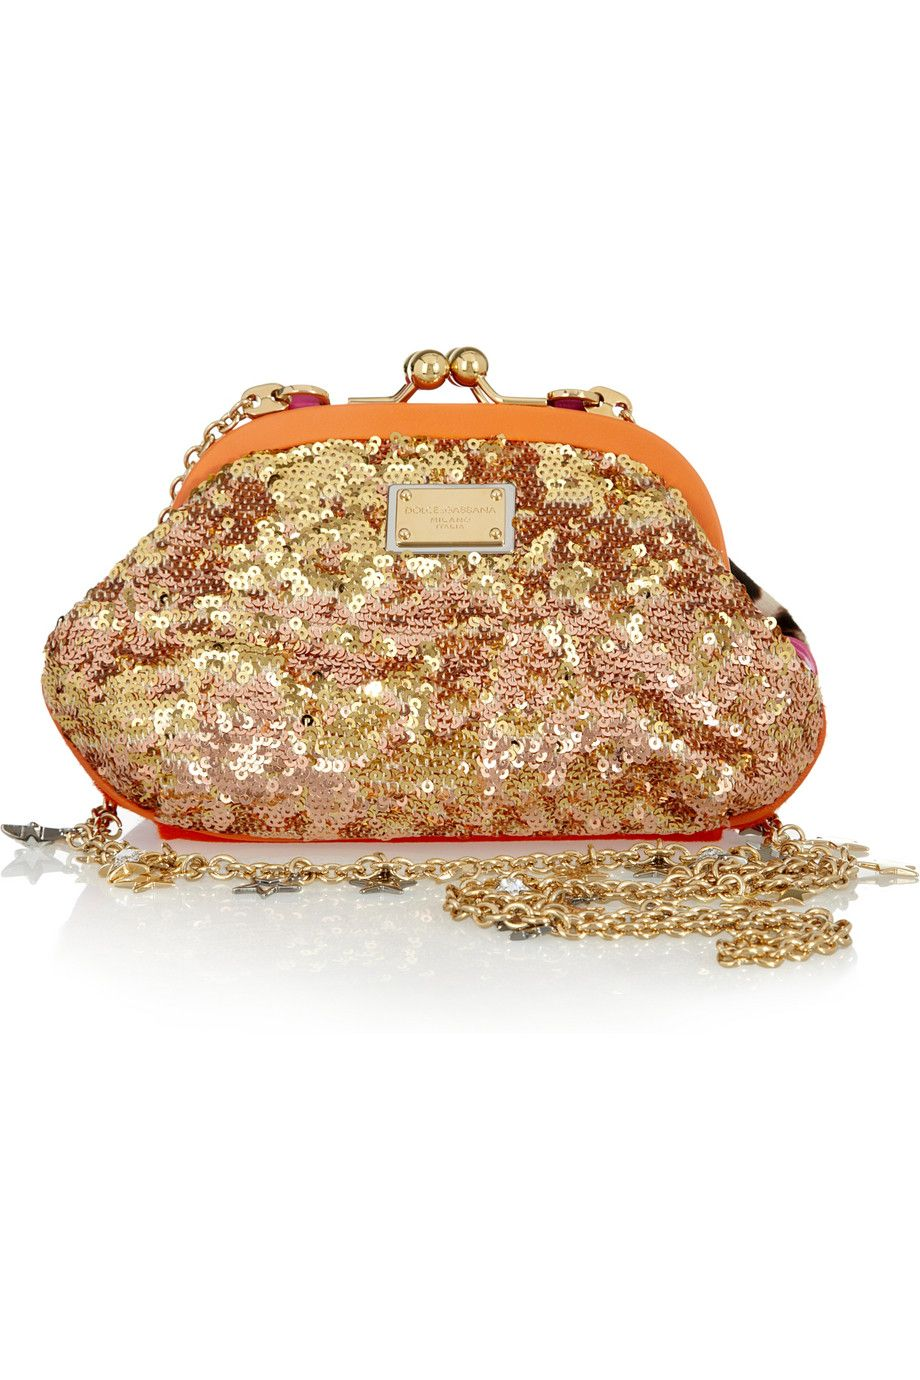 abd36aa90838 Bag · Dolce   Gabbana Doublecompartment Sequined ...